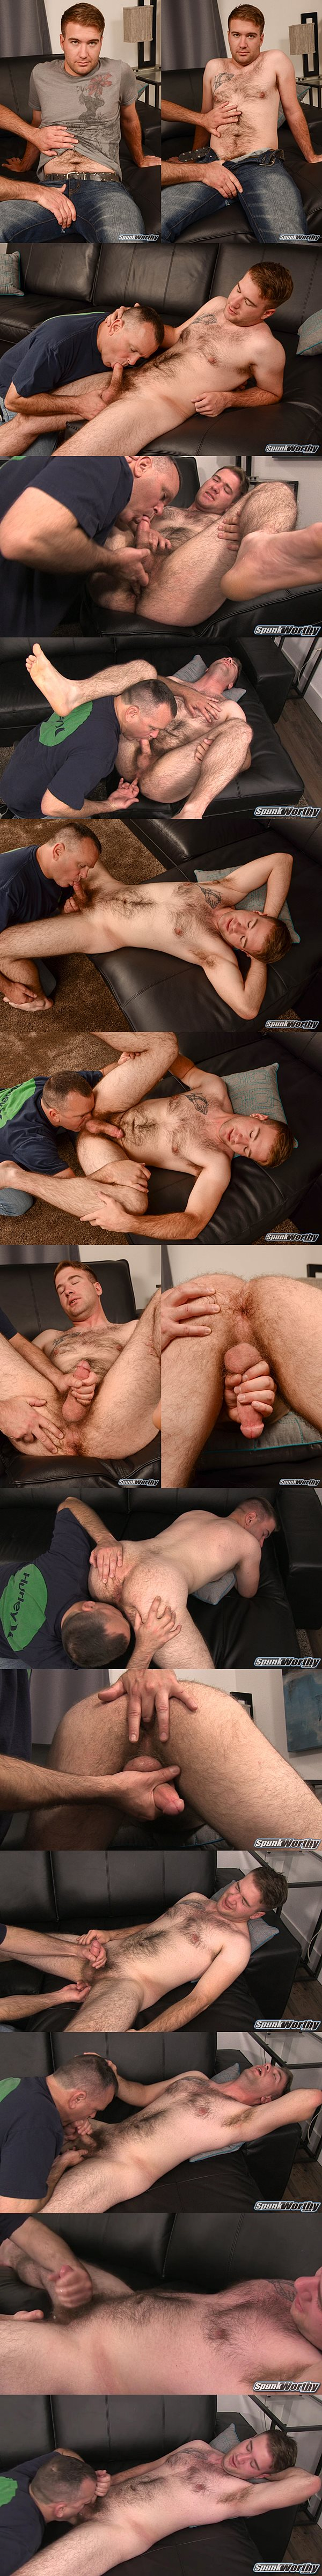 Hot hairy Marine Lance gets dick sucked and ass fingered before he gets his hot load jerked out of his hard cock at Spunkworthy 02